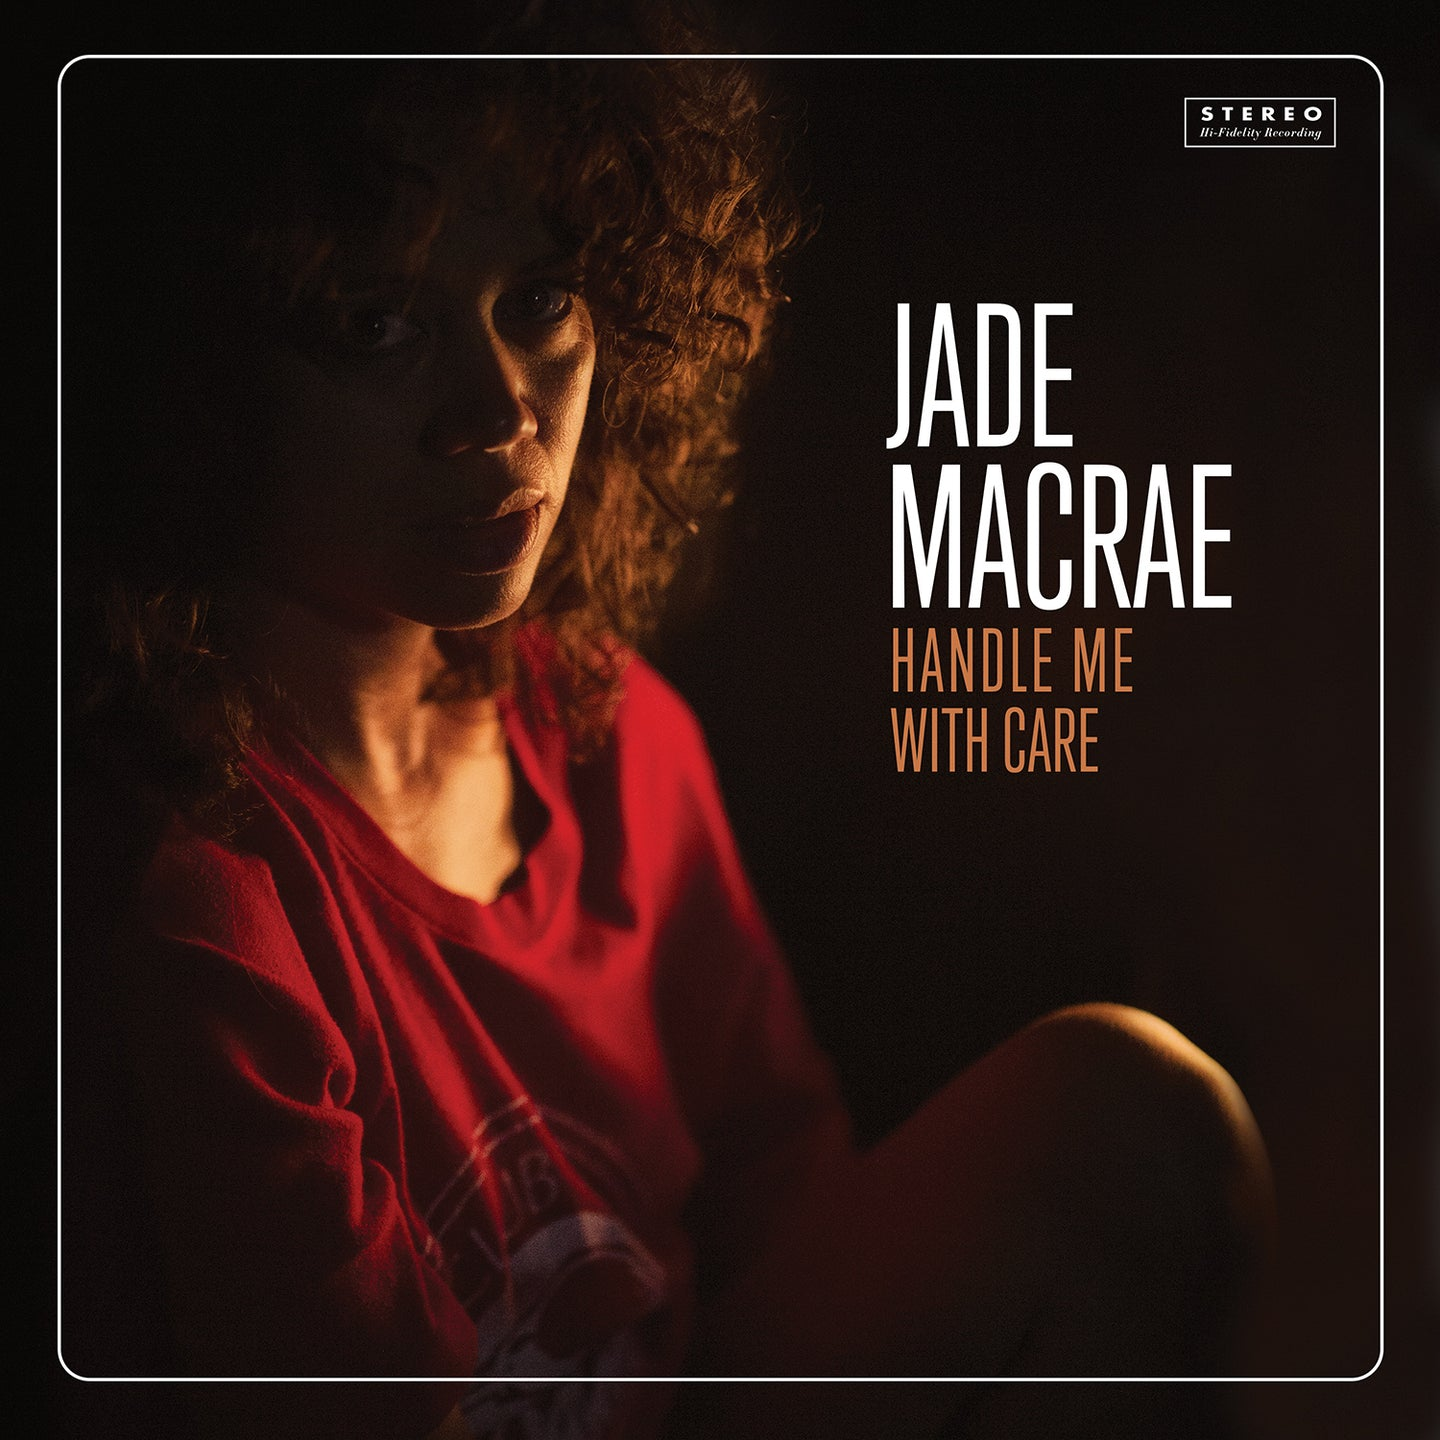 Handle Me With Care - CD version